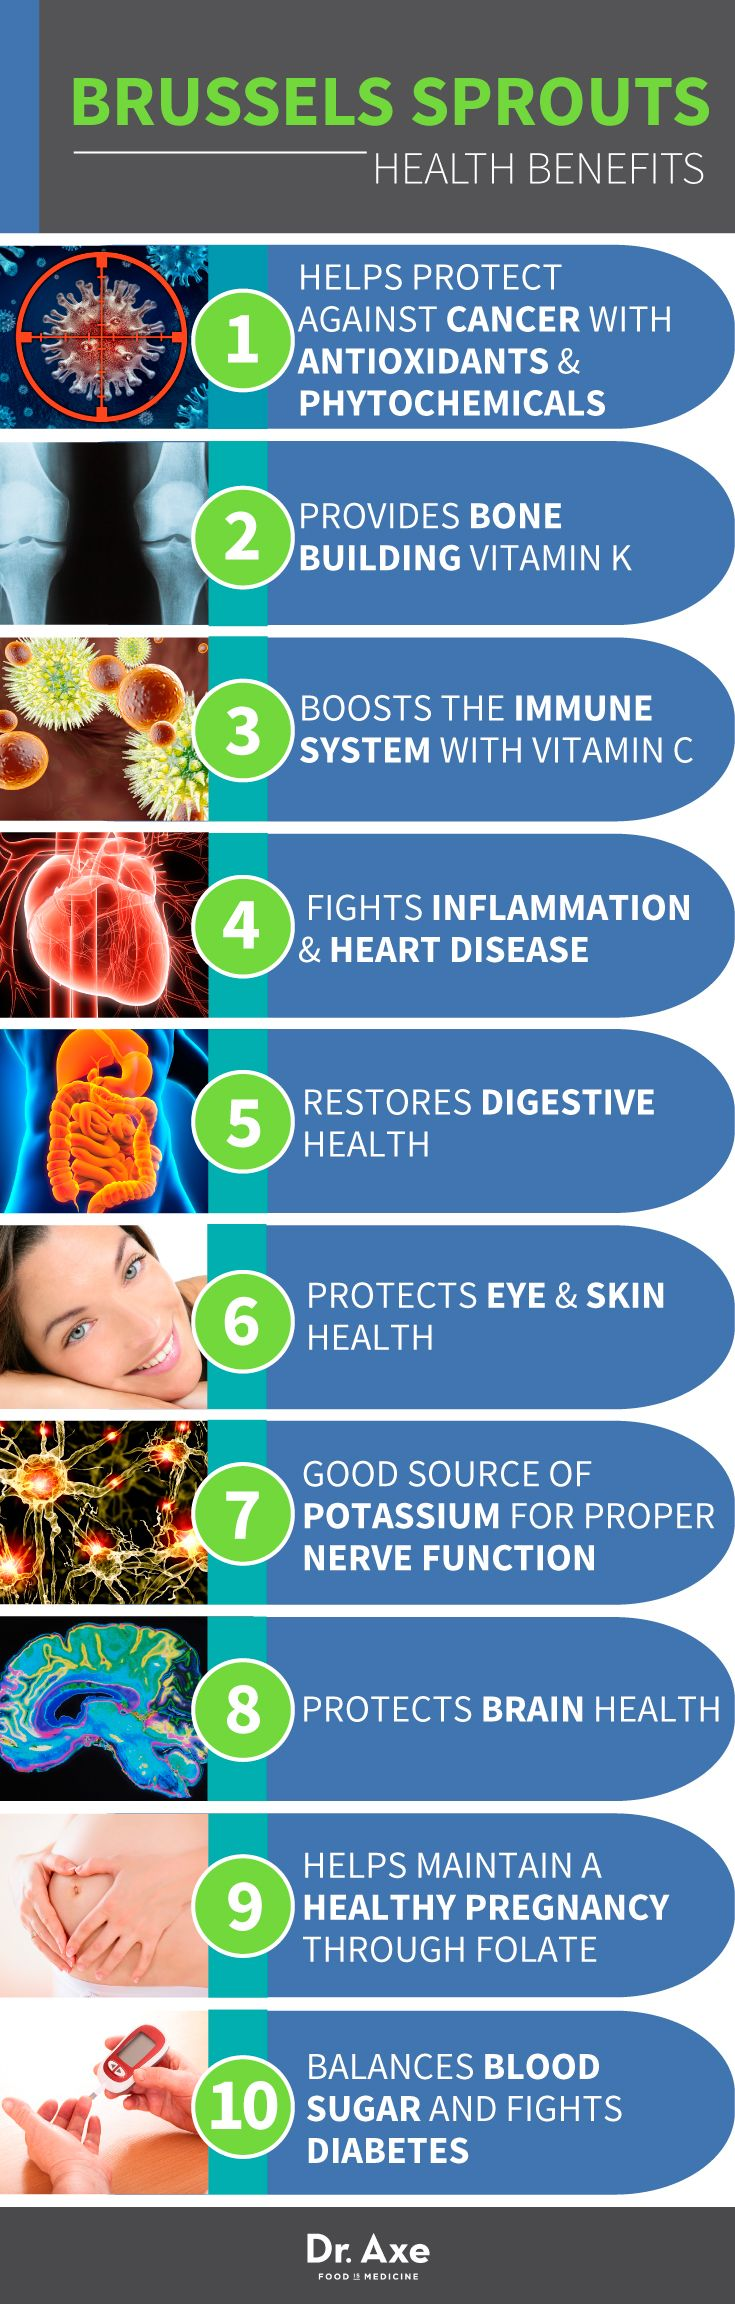 Brussels Sprouts Benefits  http://www.draxe.com #health #holistic #natural